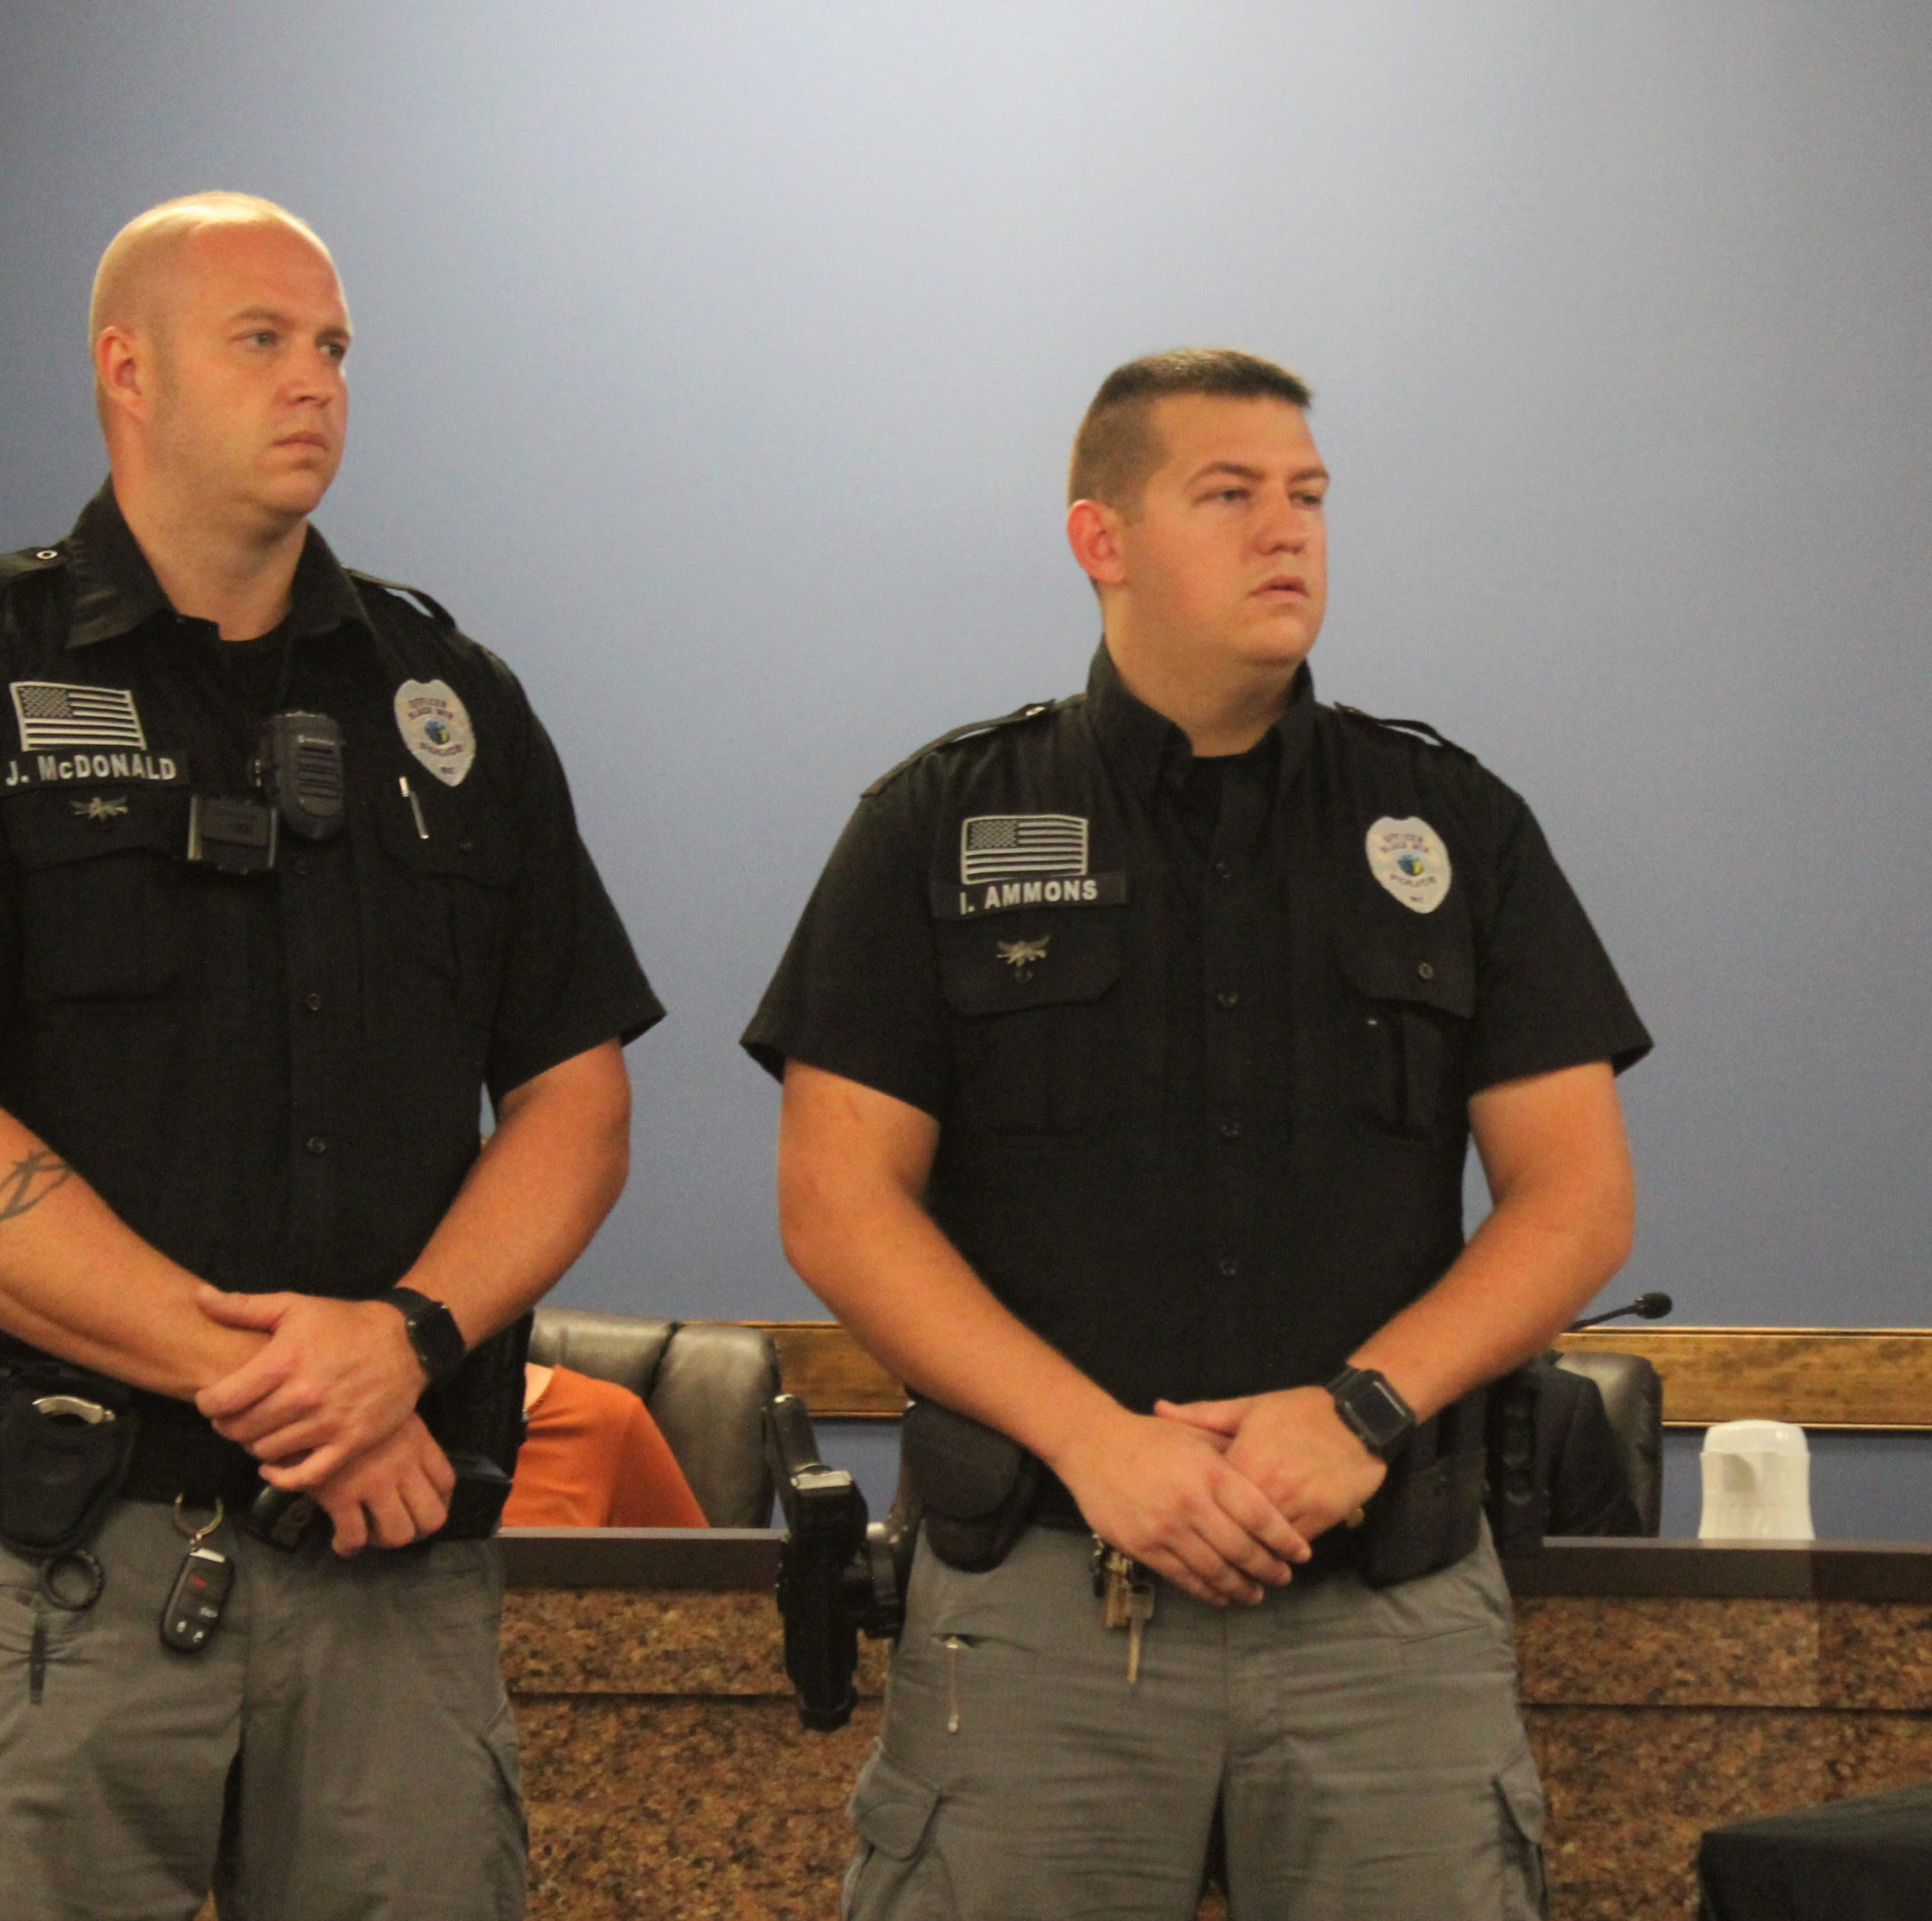 Black Mountain police officers recognized for saving lives